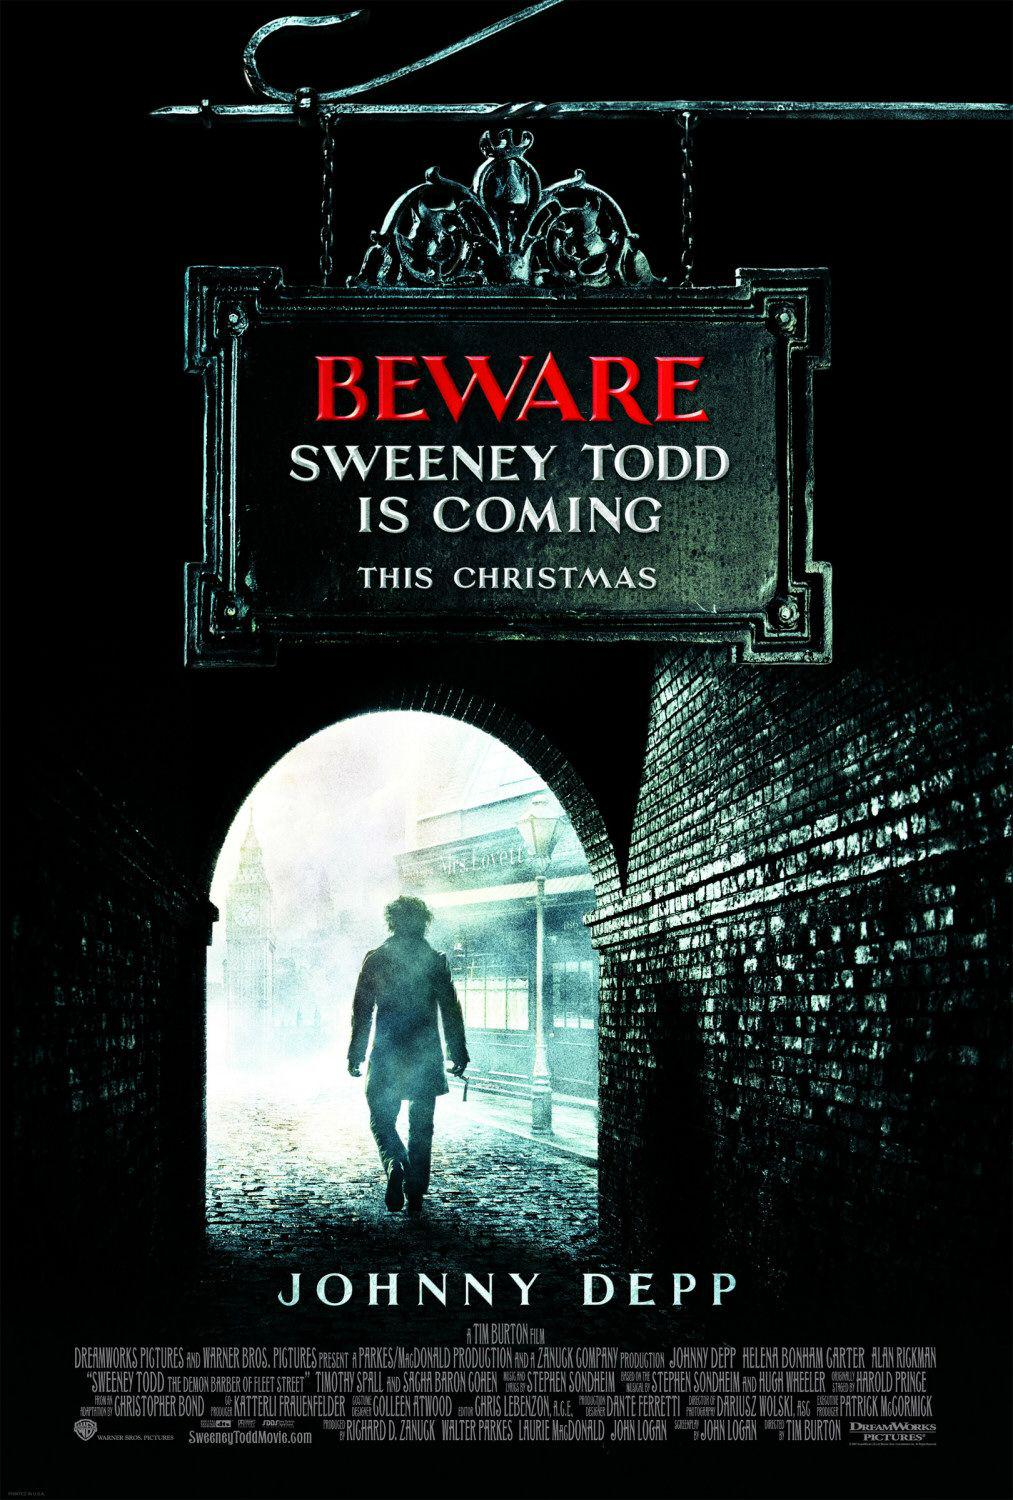 Sweeney Todd - Il diabolico barbiere di Fleet Street - The Demon Barber of Fleet Street - poster